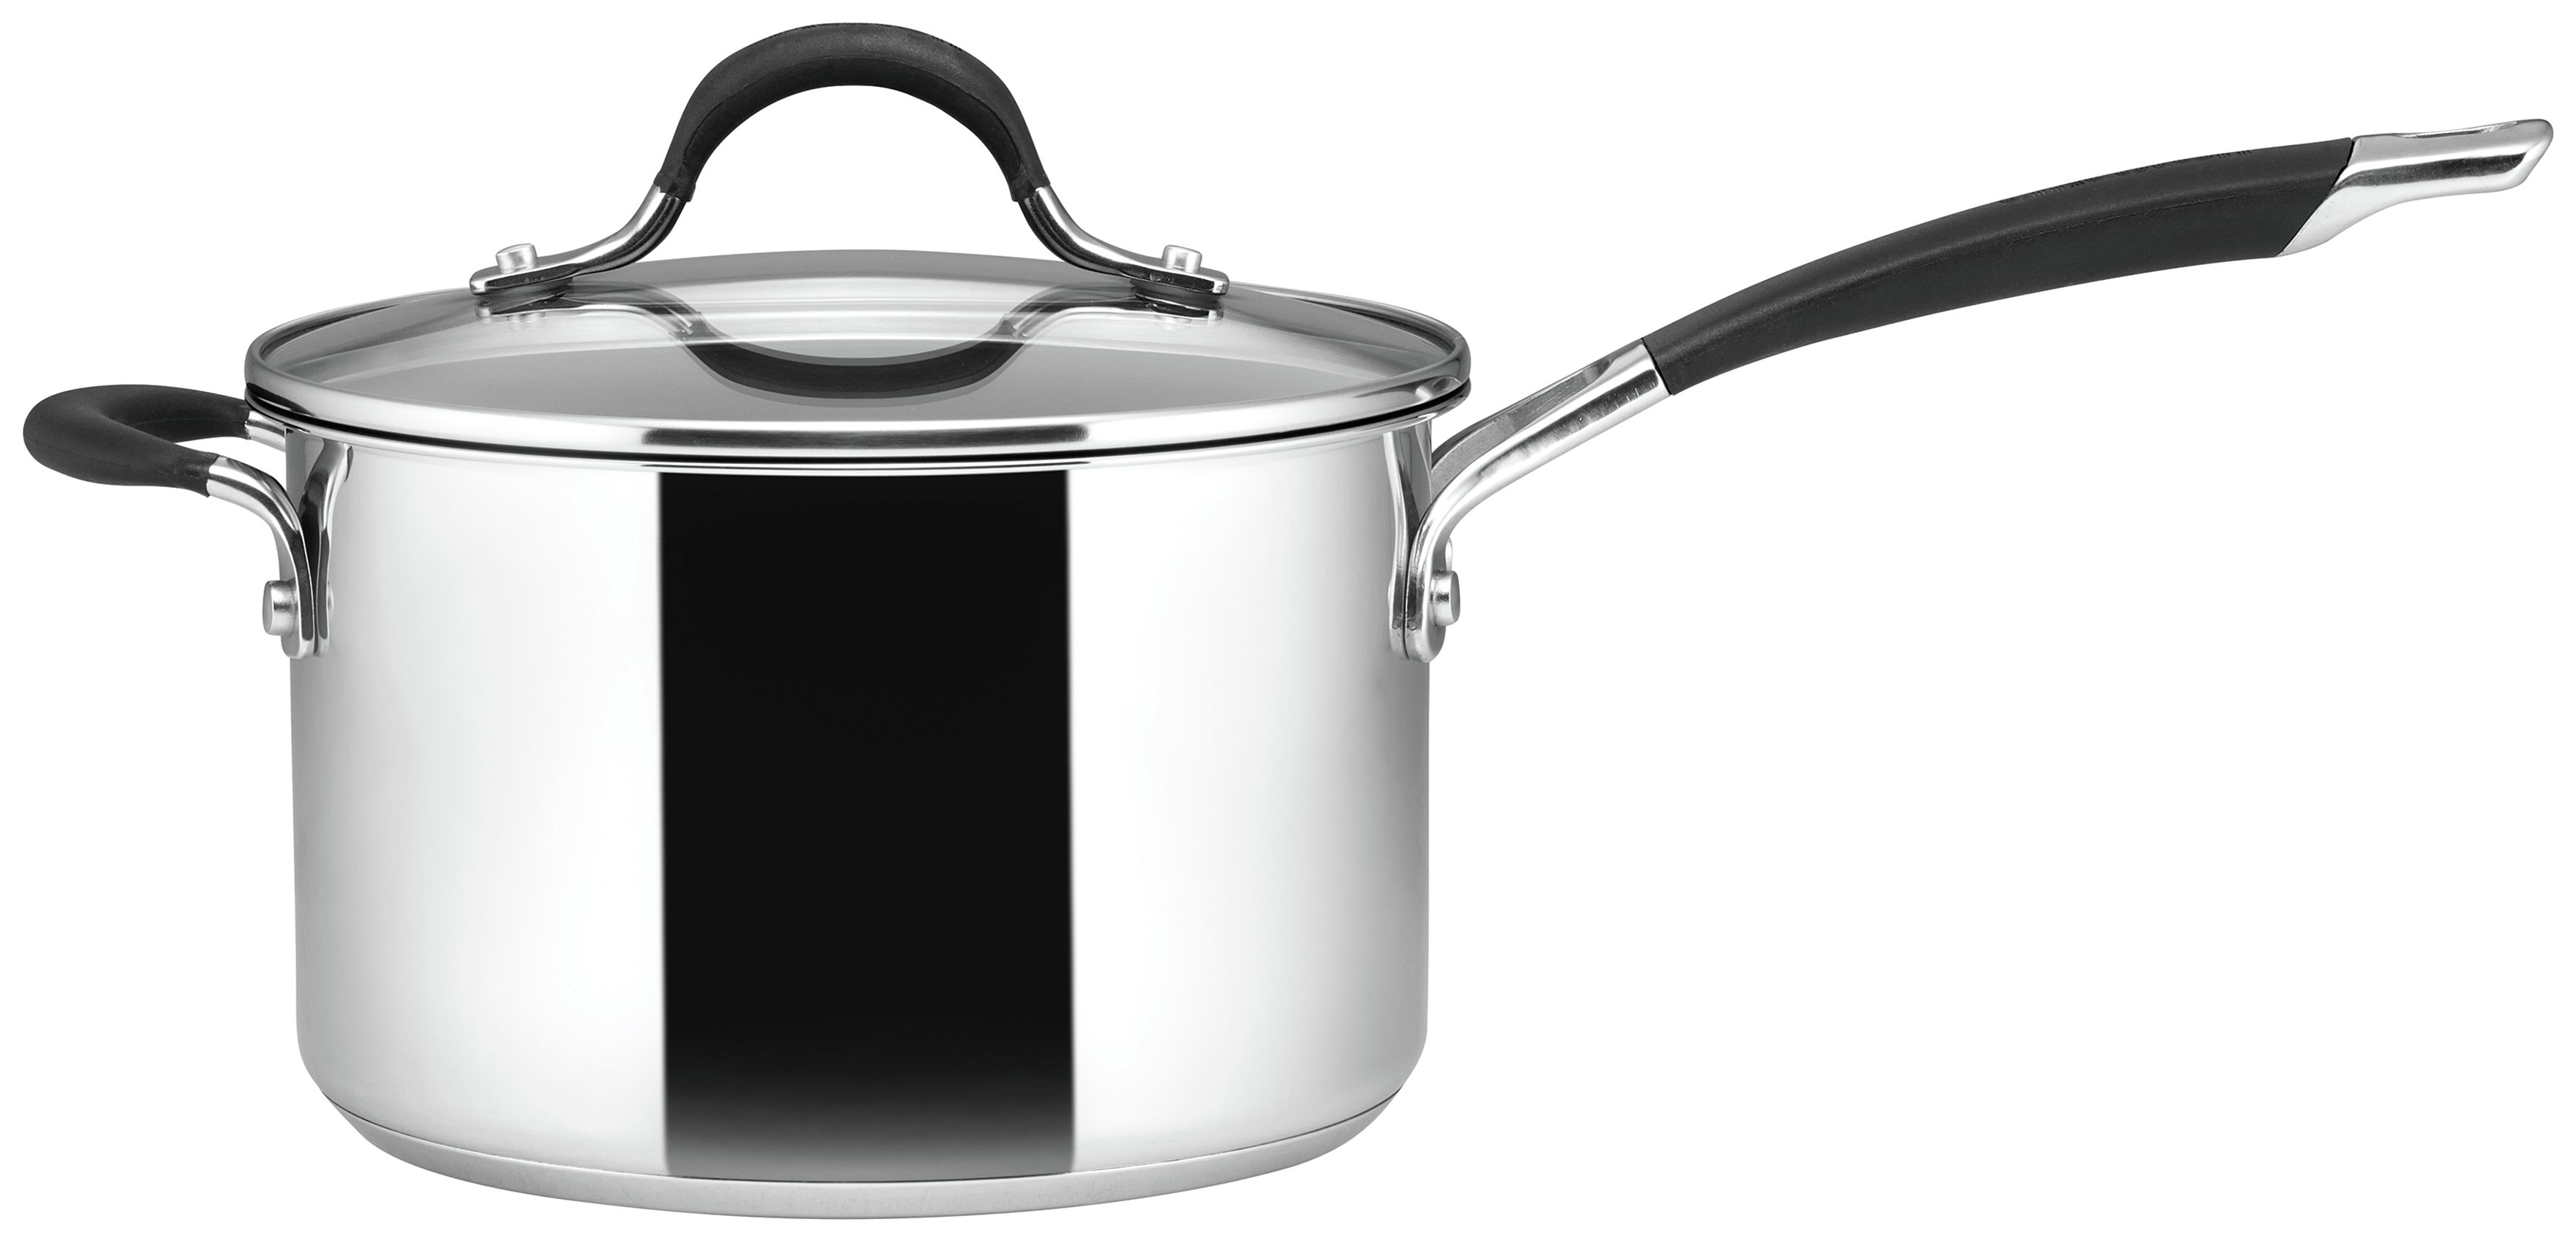 Image of Circulon Momentum 20cm Stainless Steel Covered Saucepan.